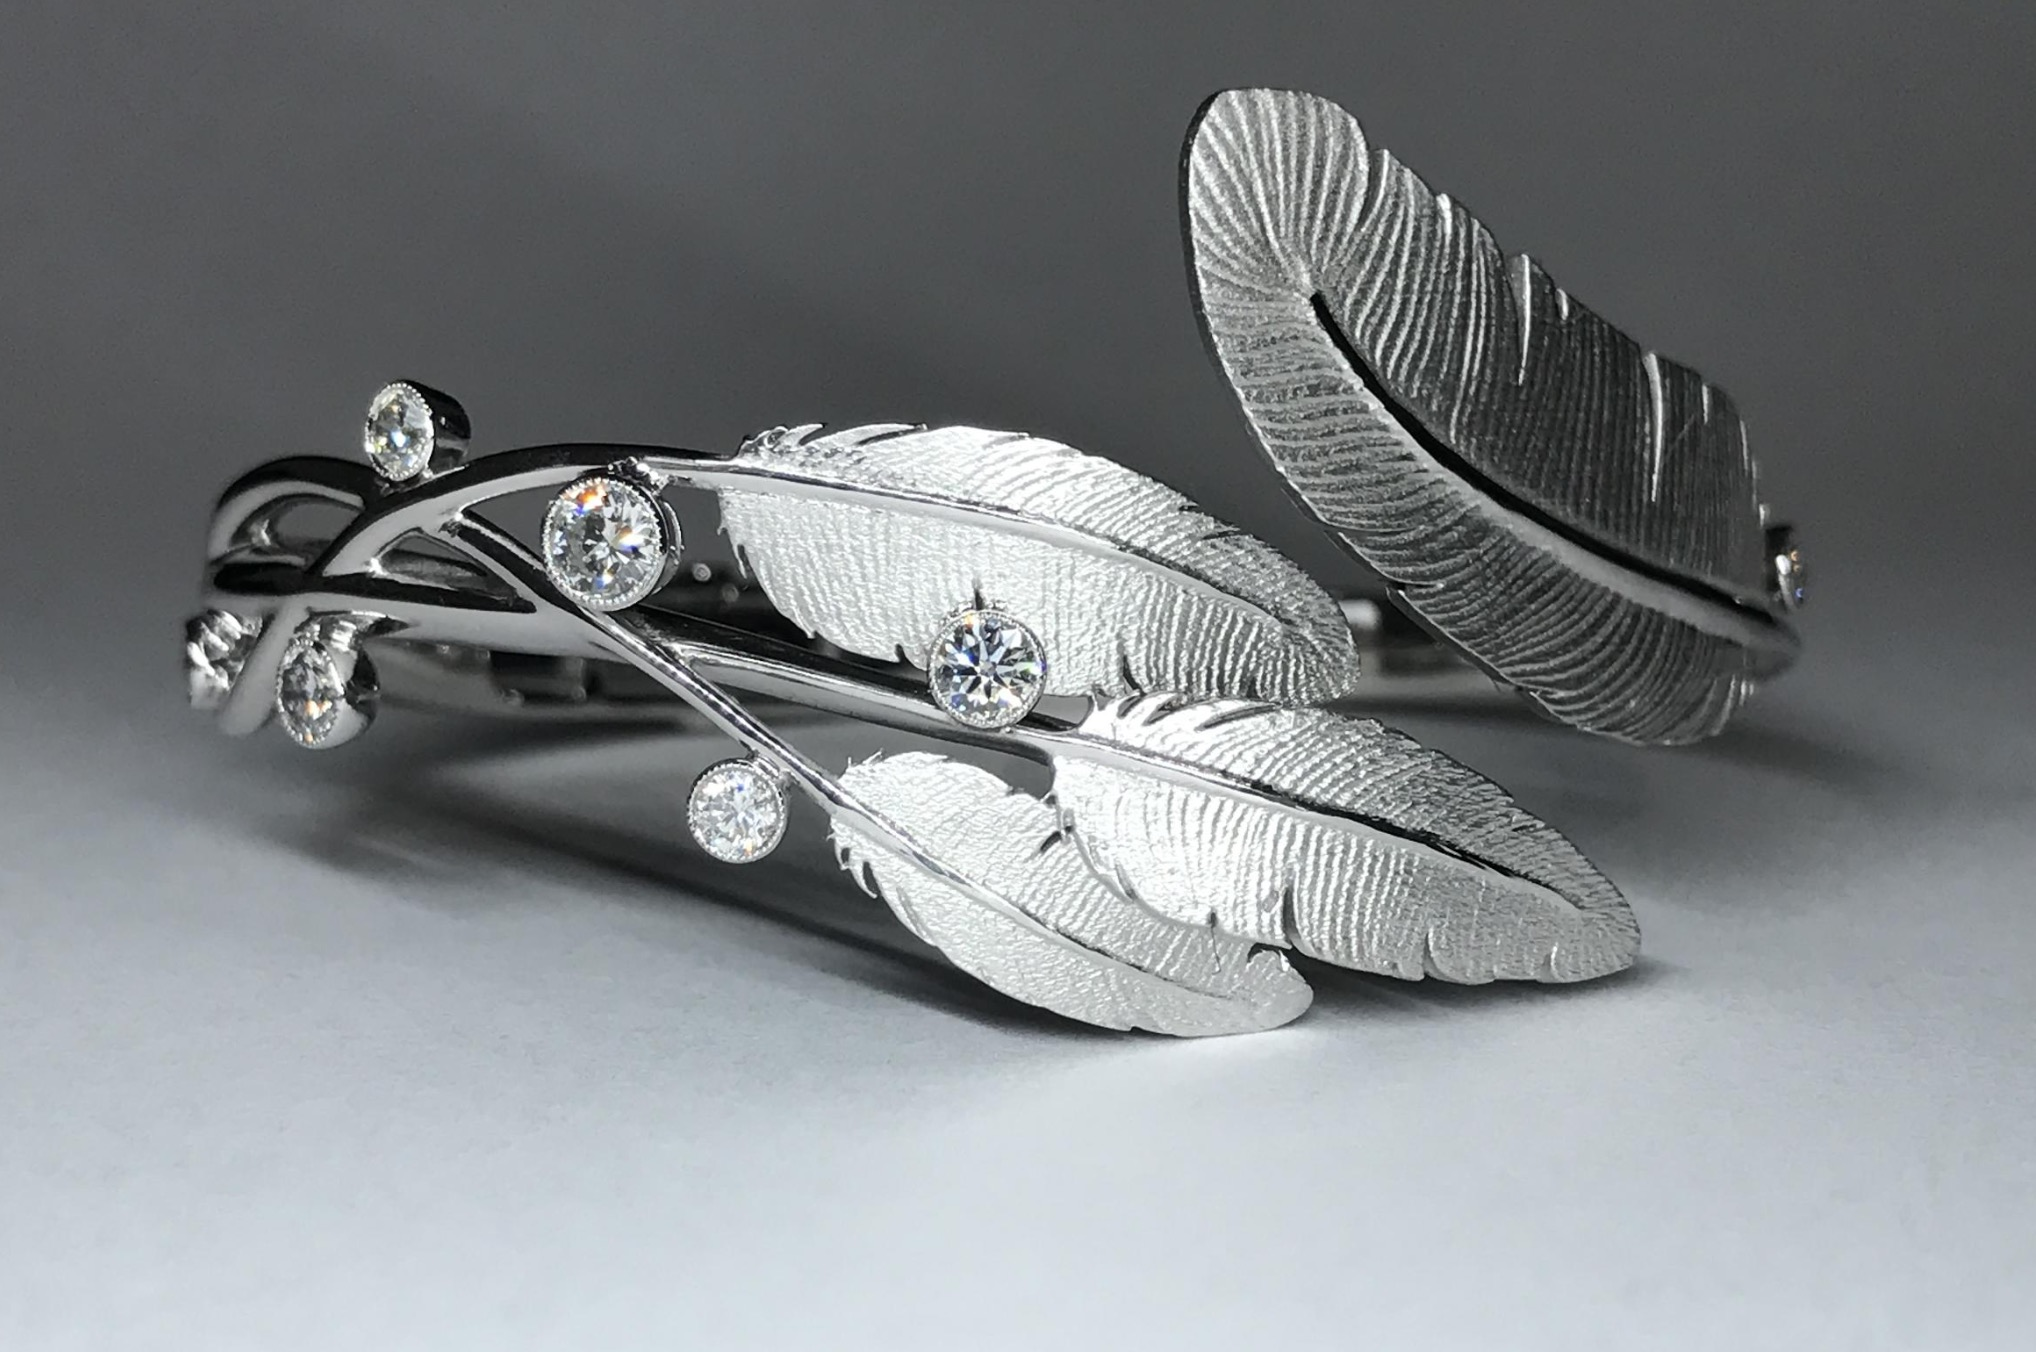 One-of-a-kind 18ct white gold feather and diamond set hinged bespoke bangle. Made in Chichester, England.